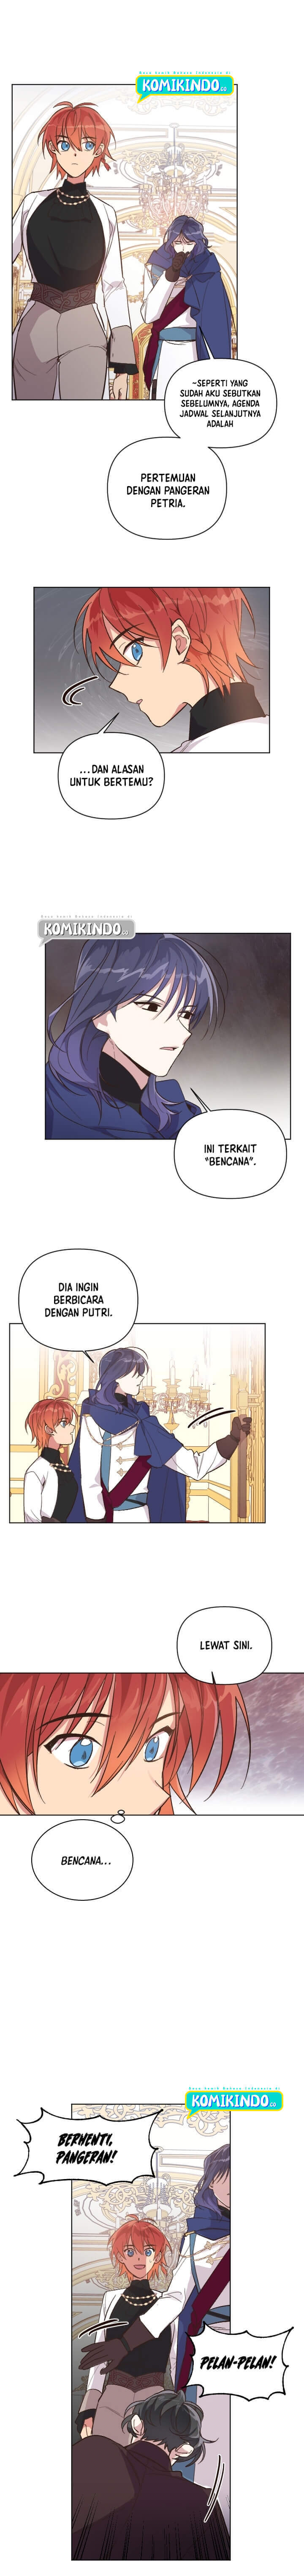 Asirhart Kingdom Aide Chapter 07